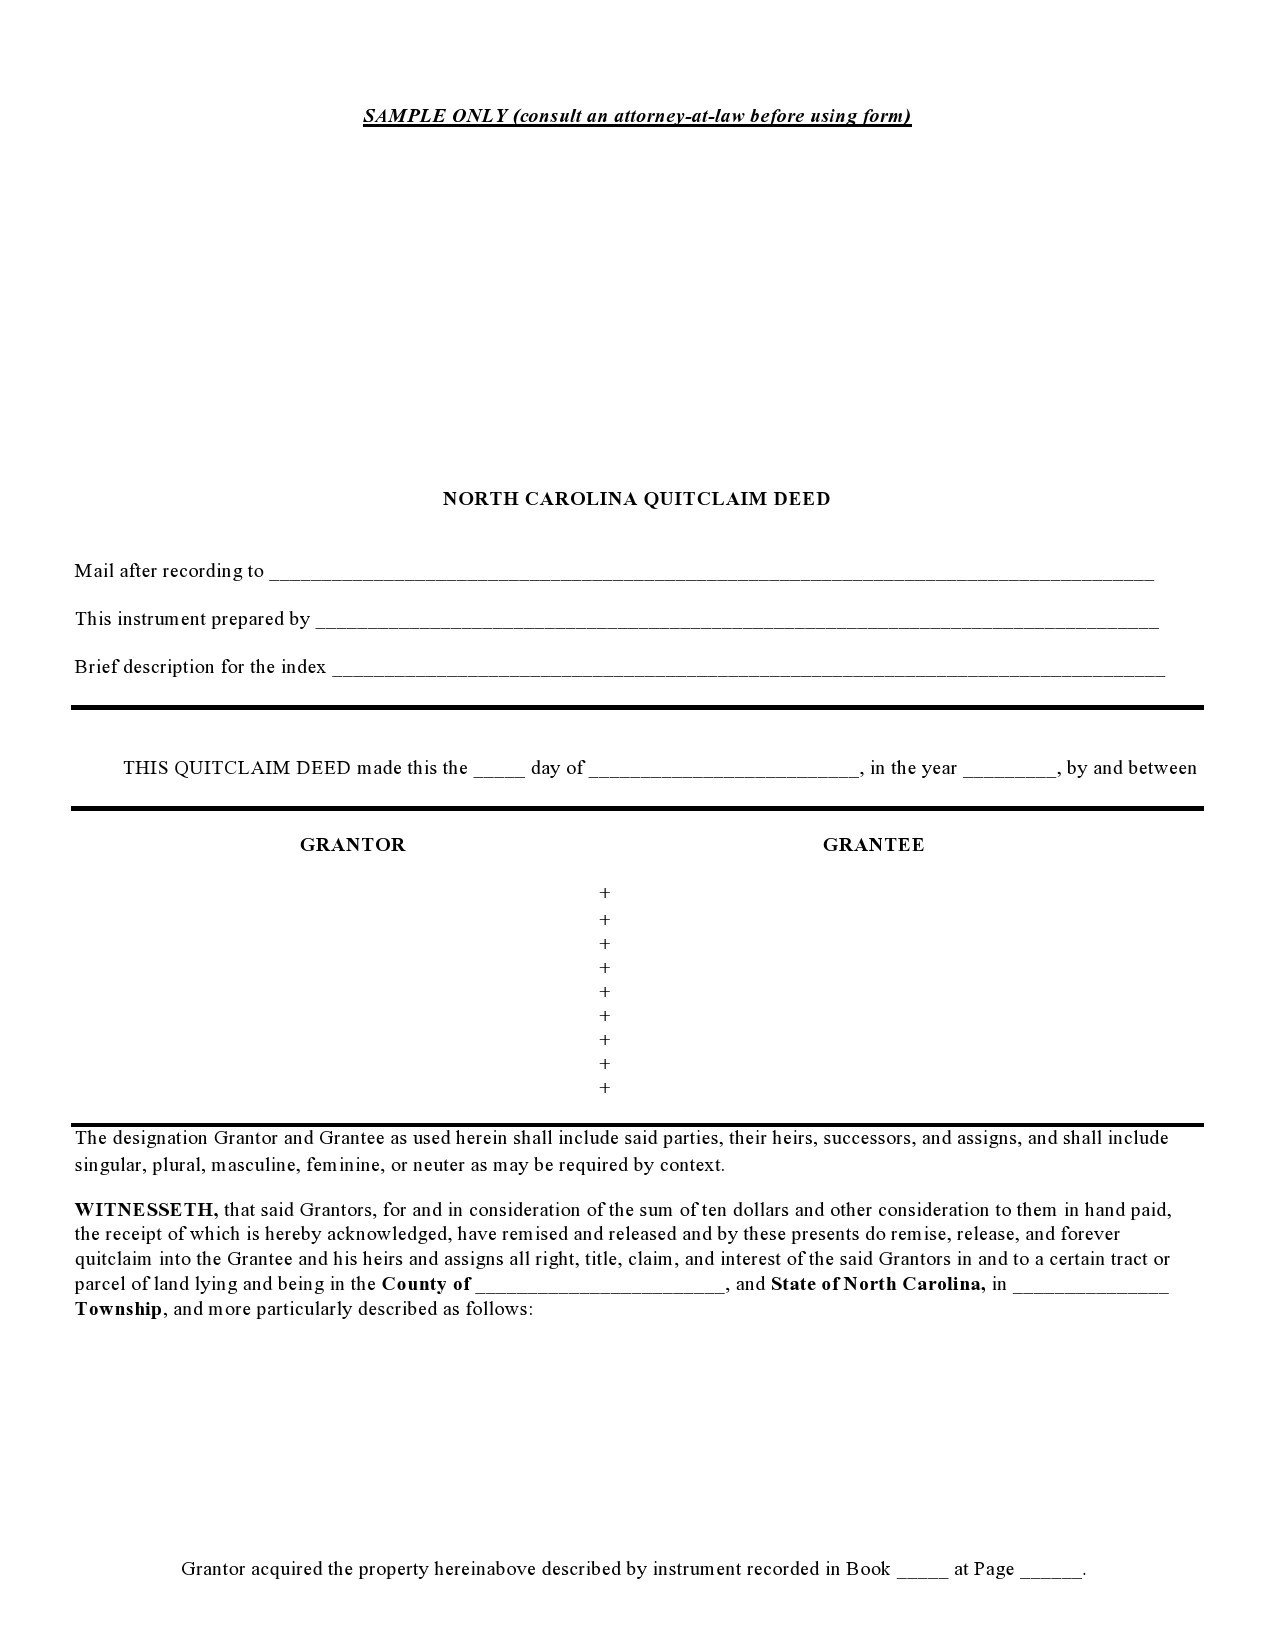 Free quit claim deed form 37